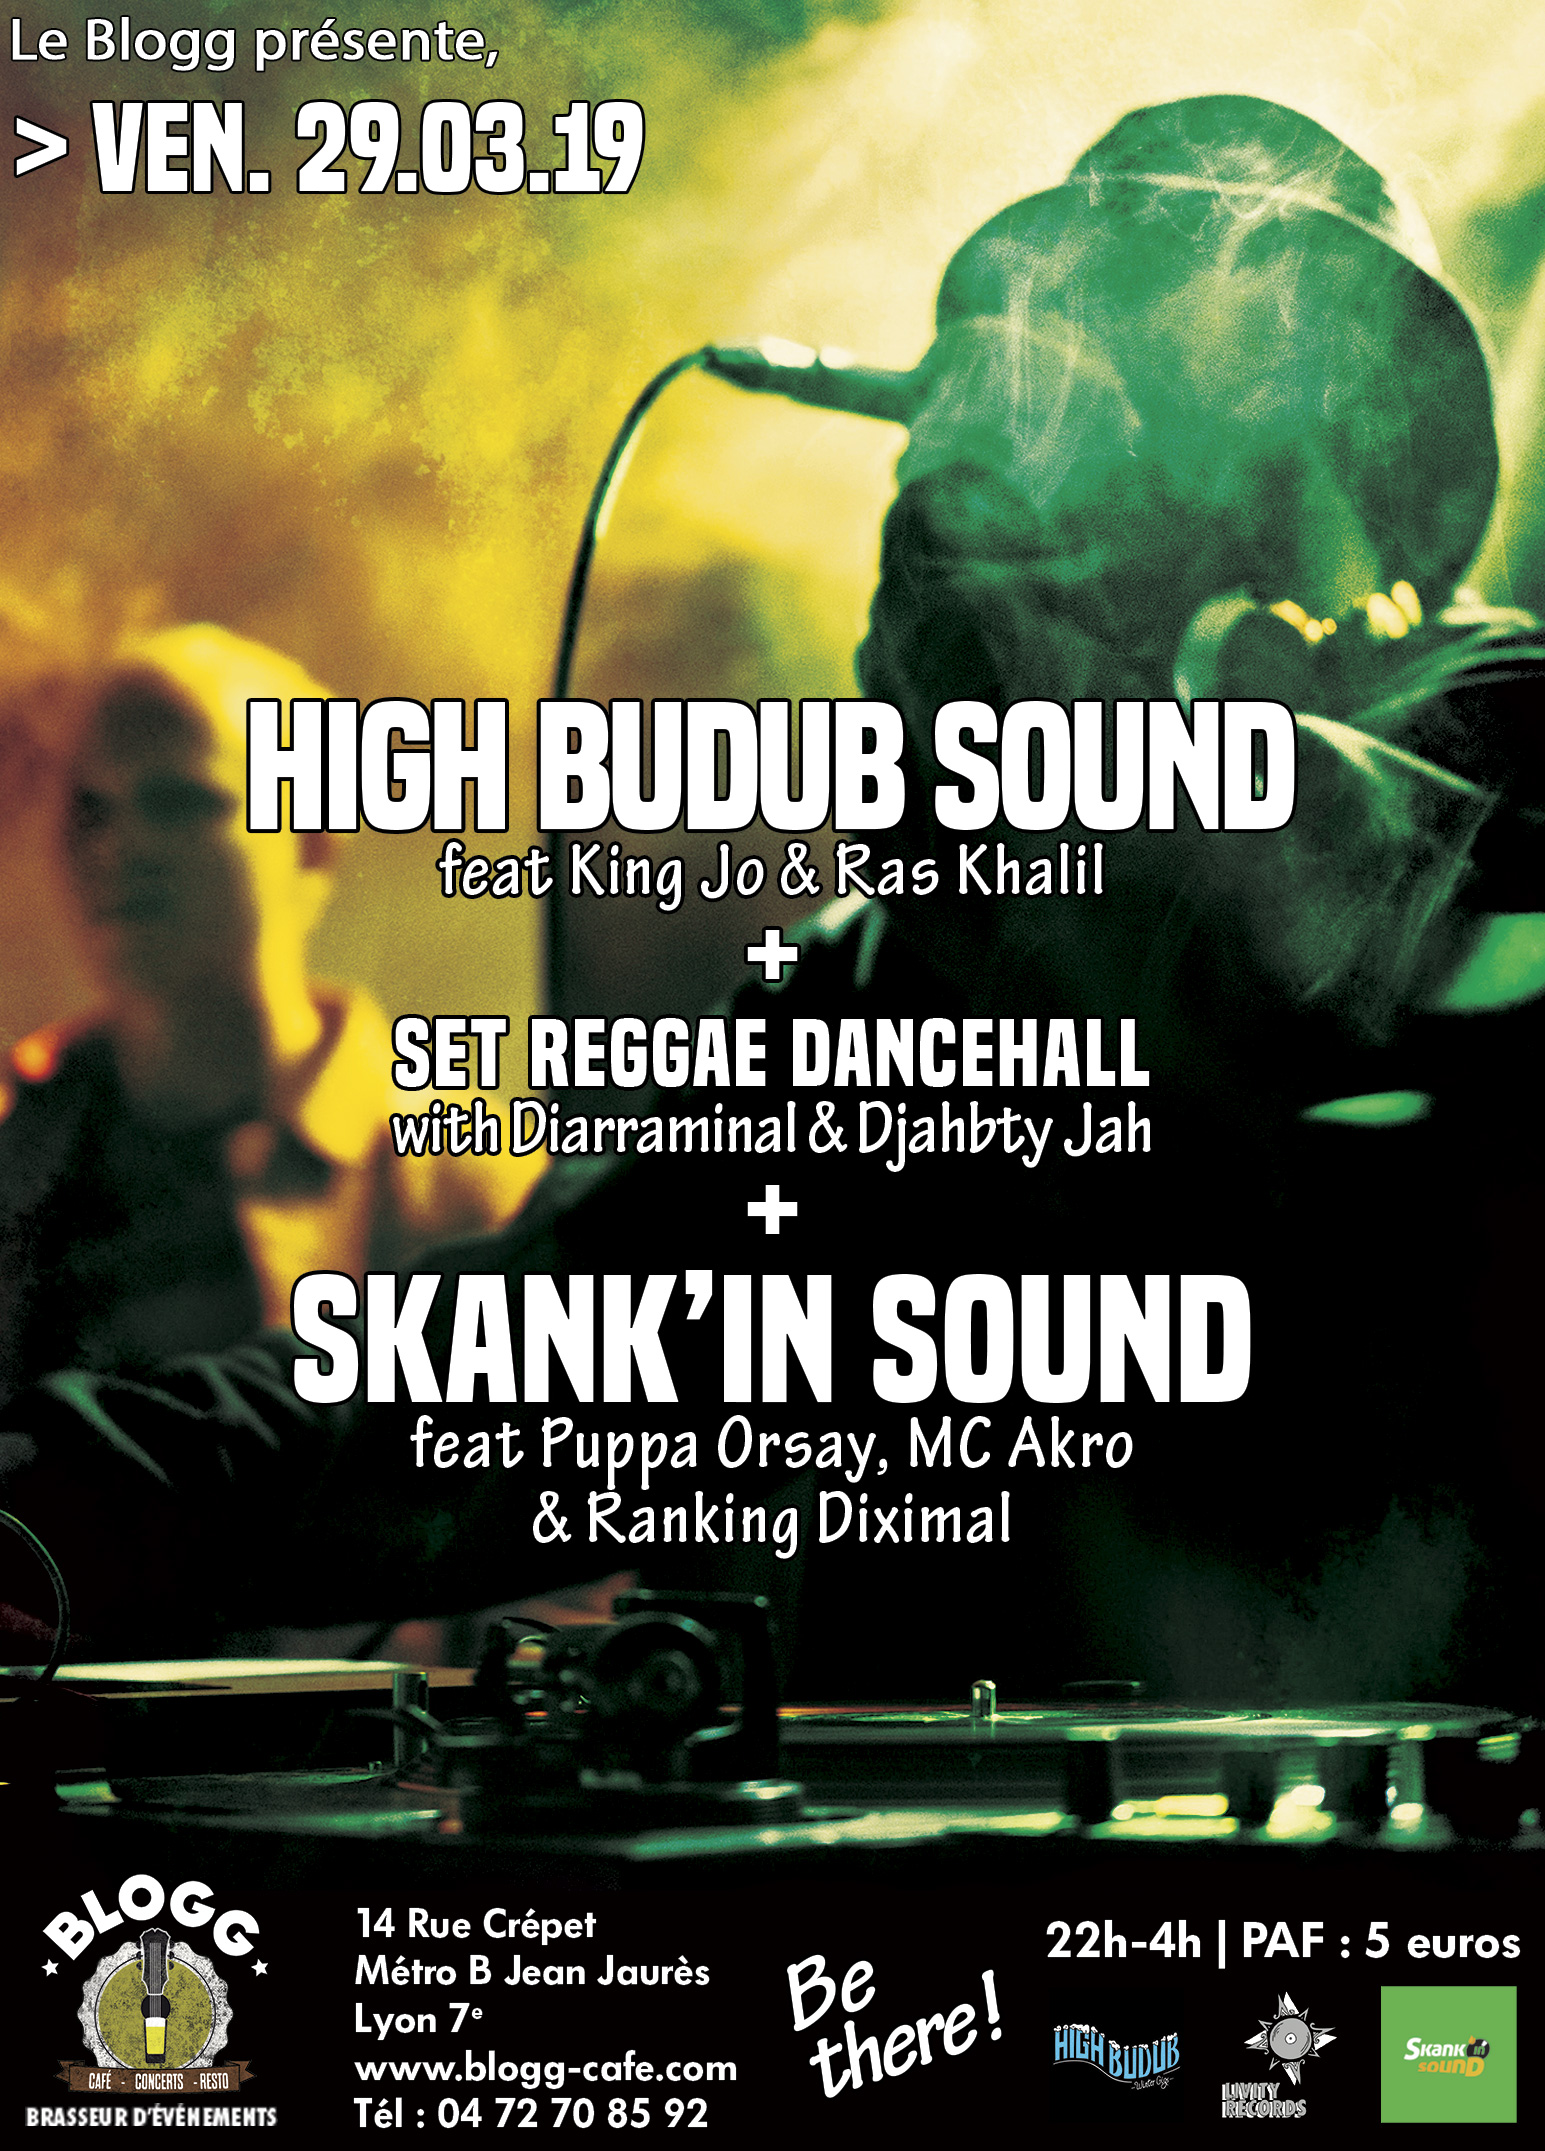 Skank'in Sound meets High Budub Sound + Guests